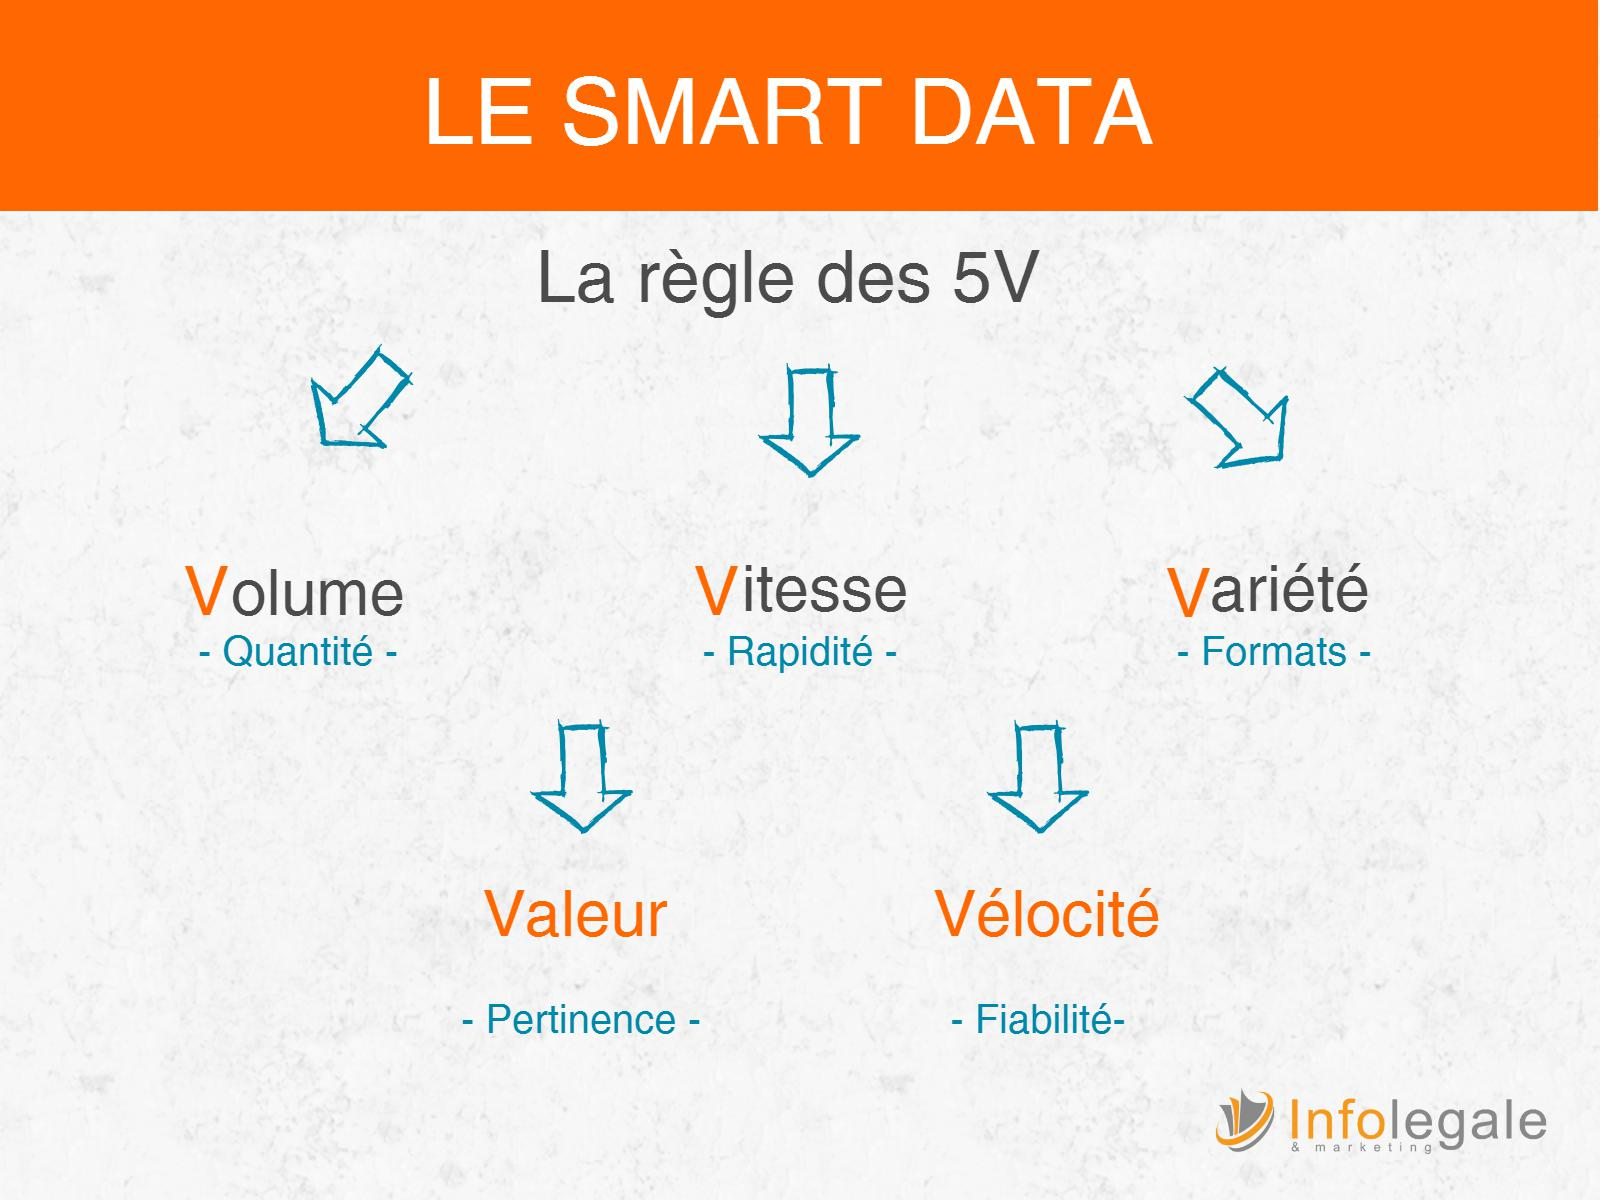 data analyse et credit management  regle des 5 v.jpeg